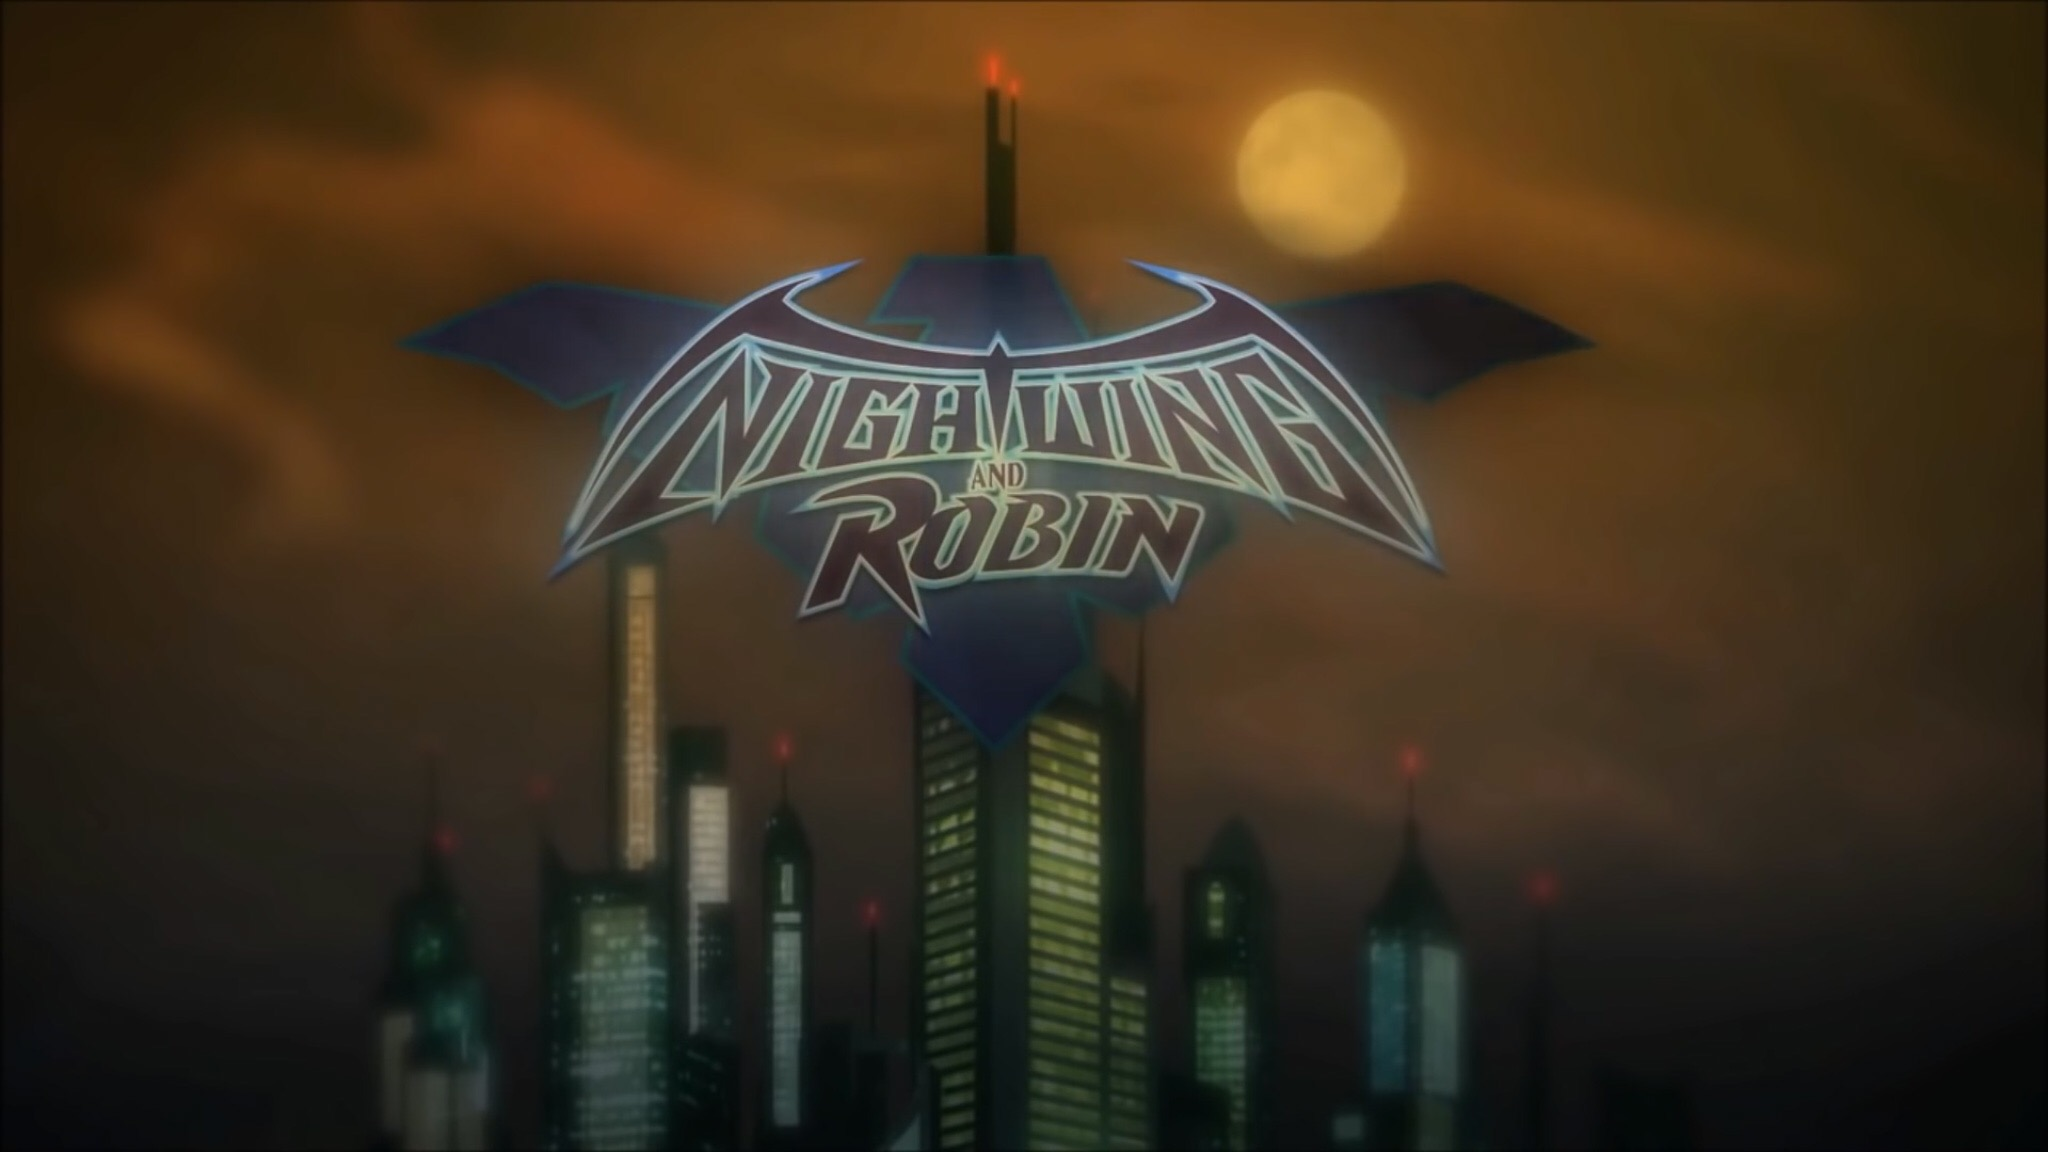 Nightwing and Robin (Short)